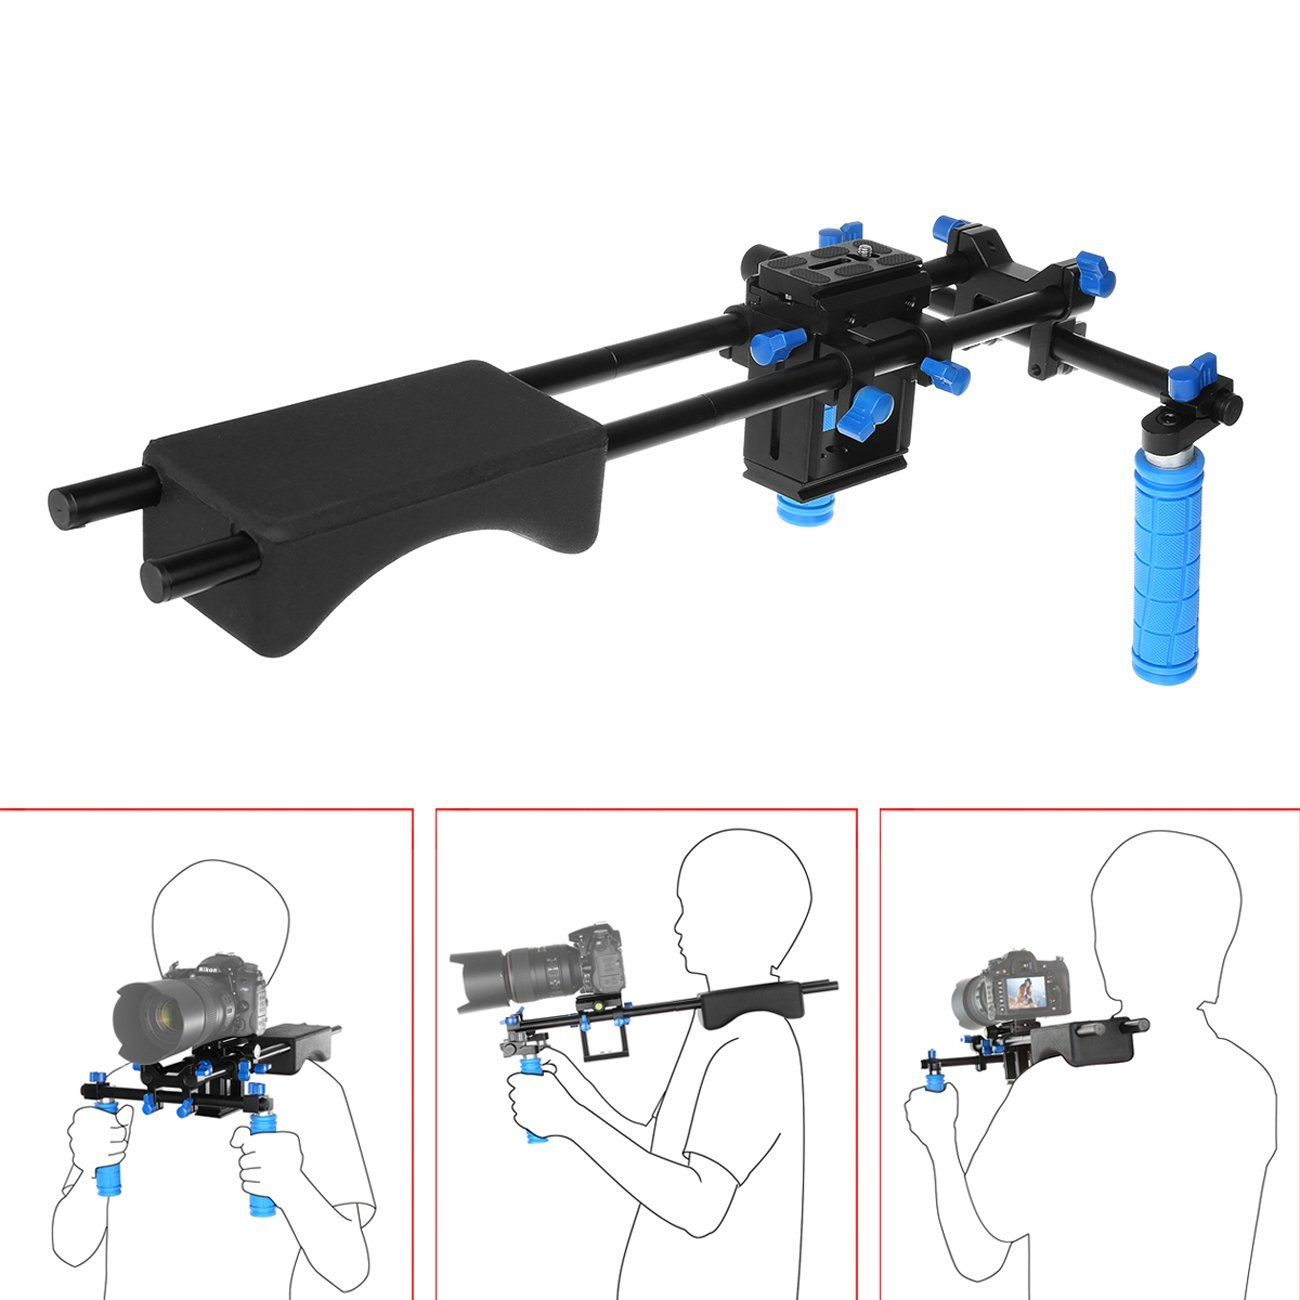 Movie Kit Set Camera Rig Camrig Shoulder Support Kit Mount With Two Handles and Shoulder Pad (Adjustable Riser) / 1/4'' and 3/8'' Standard Thread for DSLR Camera Such as: Canon EOS 60D 1D Canon 5D Mark II Fujifilm X-Pro1